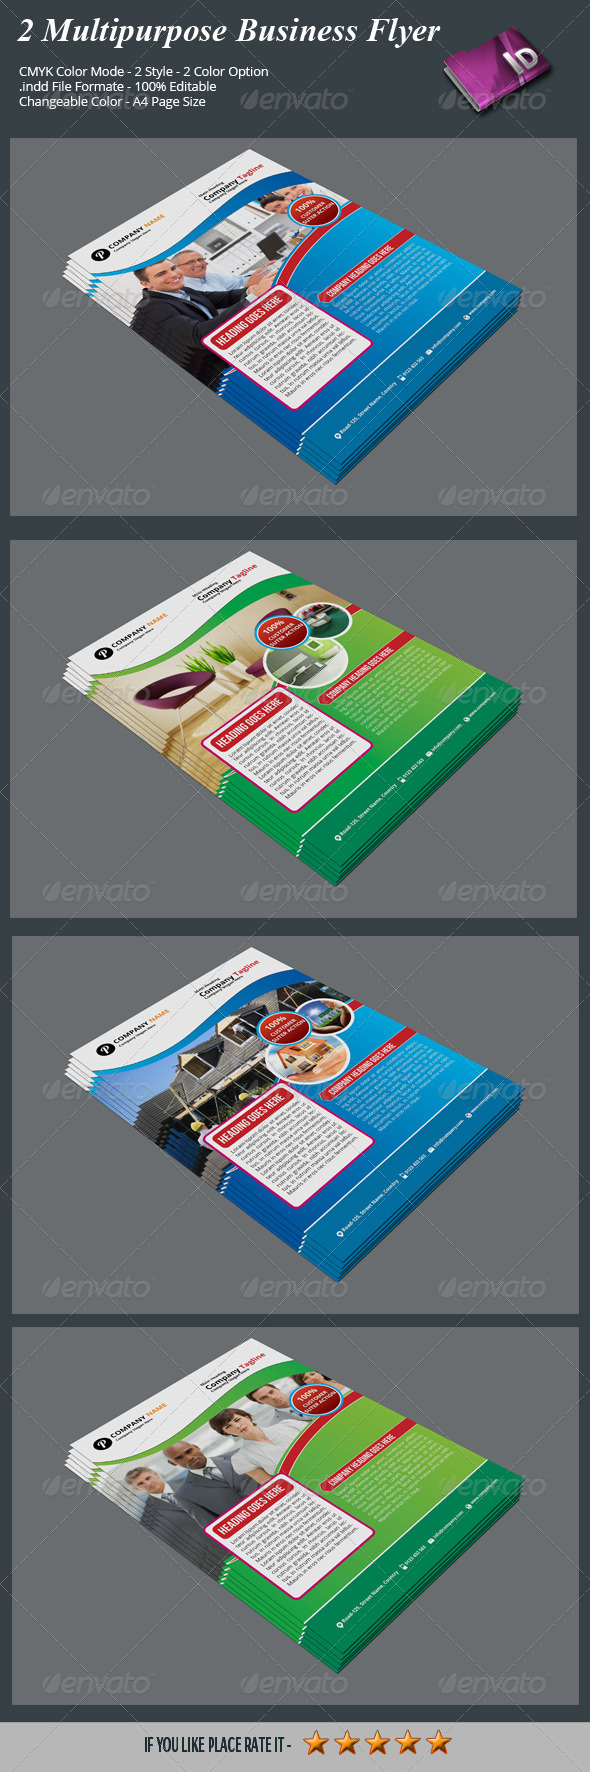 GraphicRiver 2 Multipurpose Business Flyer 7951201